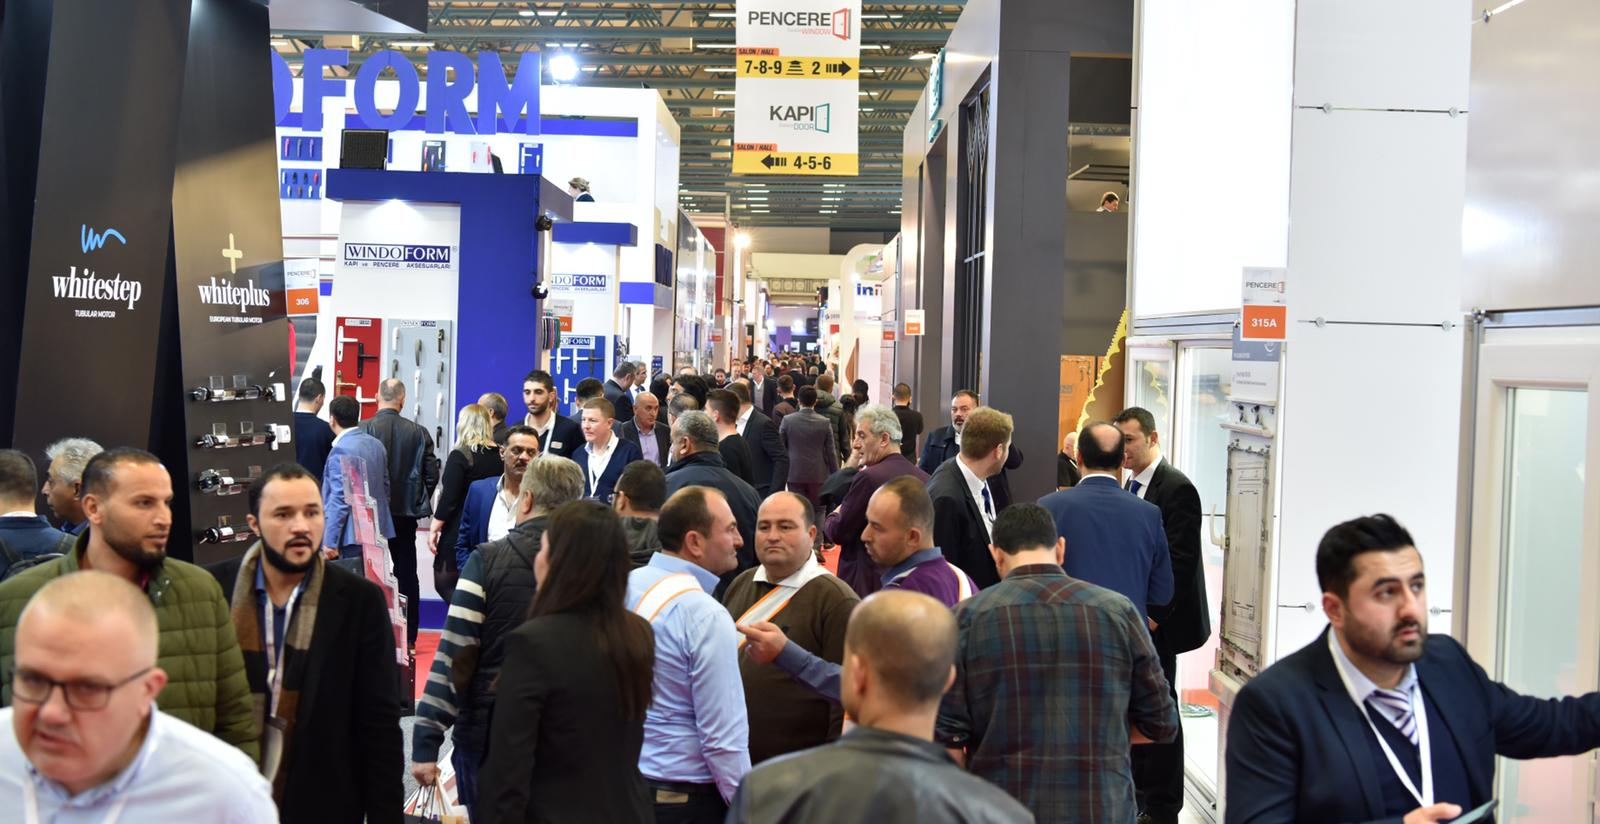 Eurasia Window, Door & Glass Fairs Proved Their Significance for the Industry Once Again With a New International Visitor Record